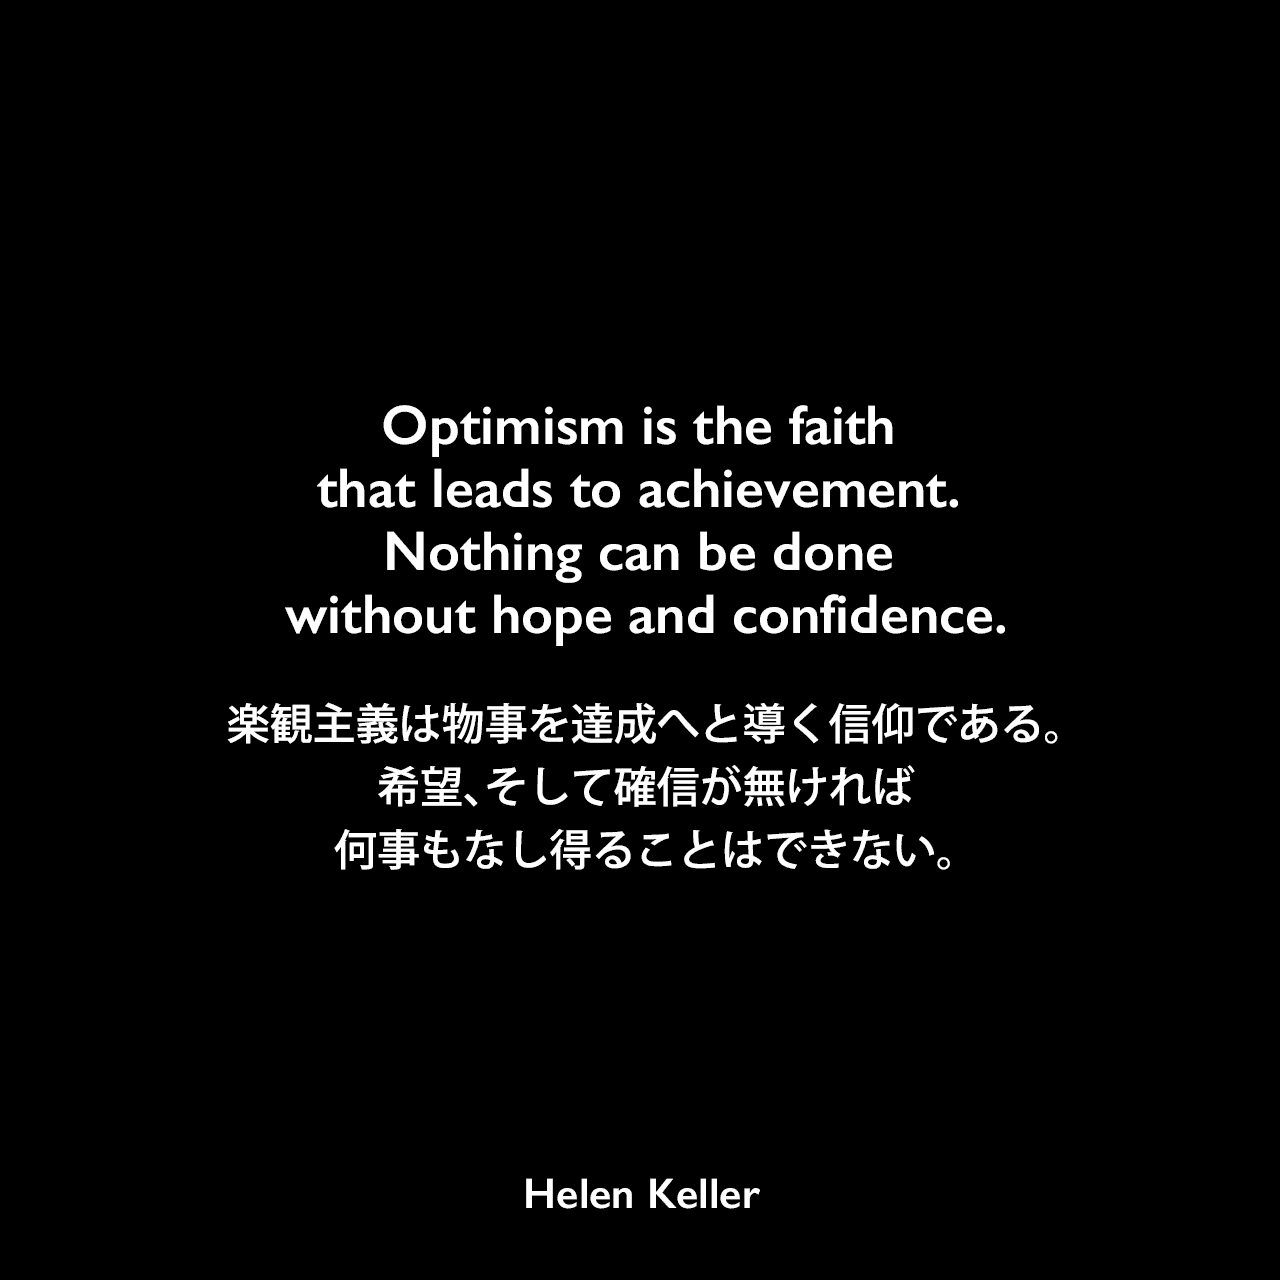 Optimism is the faith that leads to achievement. Nothing can be done without hope and confidence.楽観主義は物事を達成へと導く信仰である。希望、そして確信が無ければ、何事もなし得ることはできない。Helen Keller